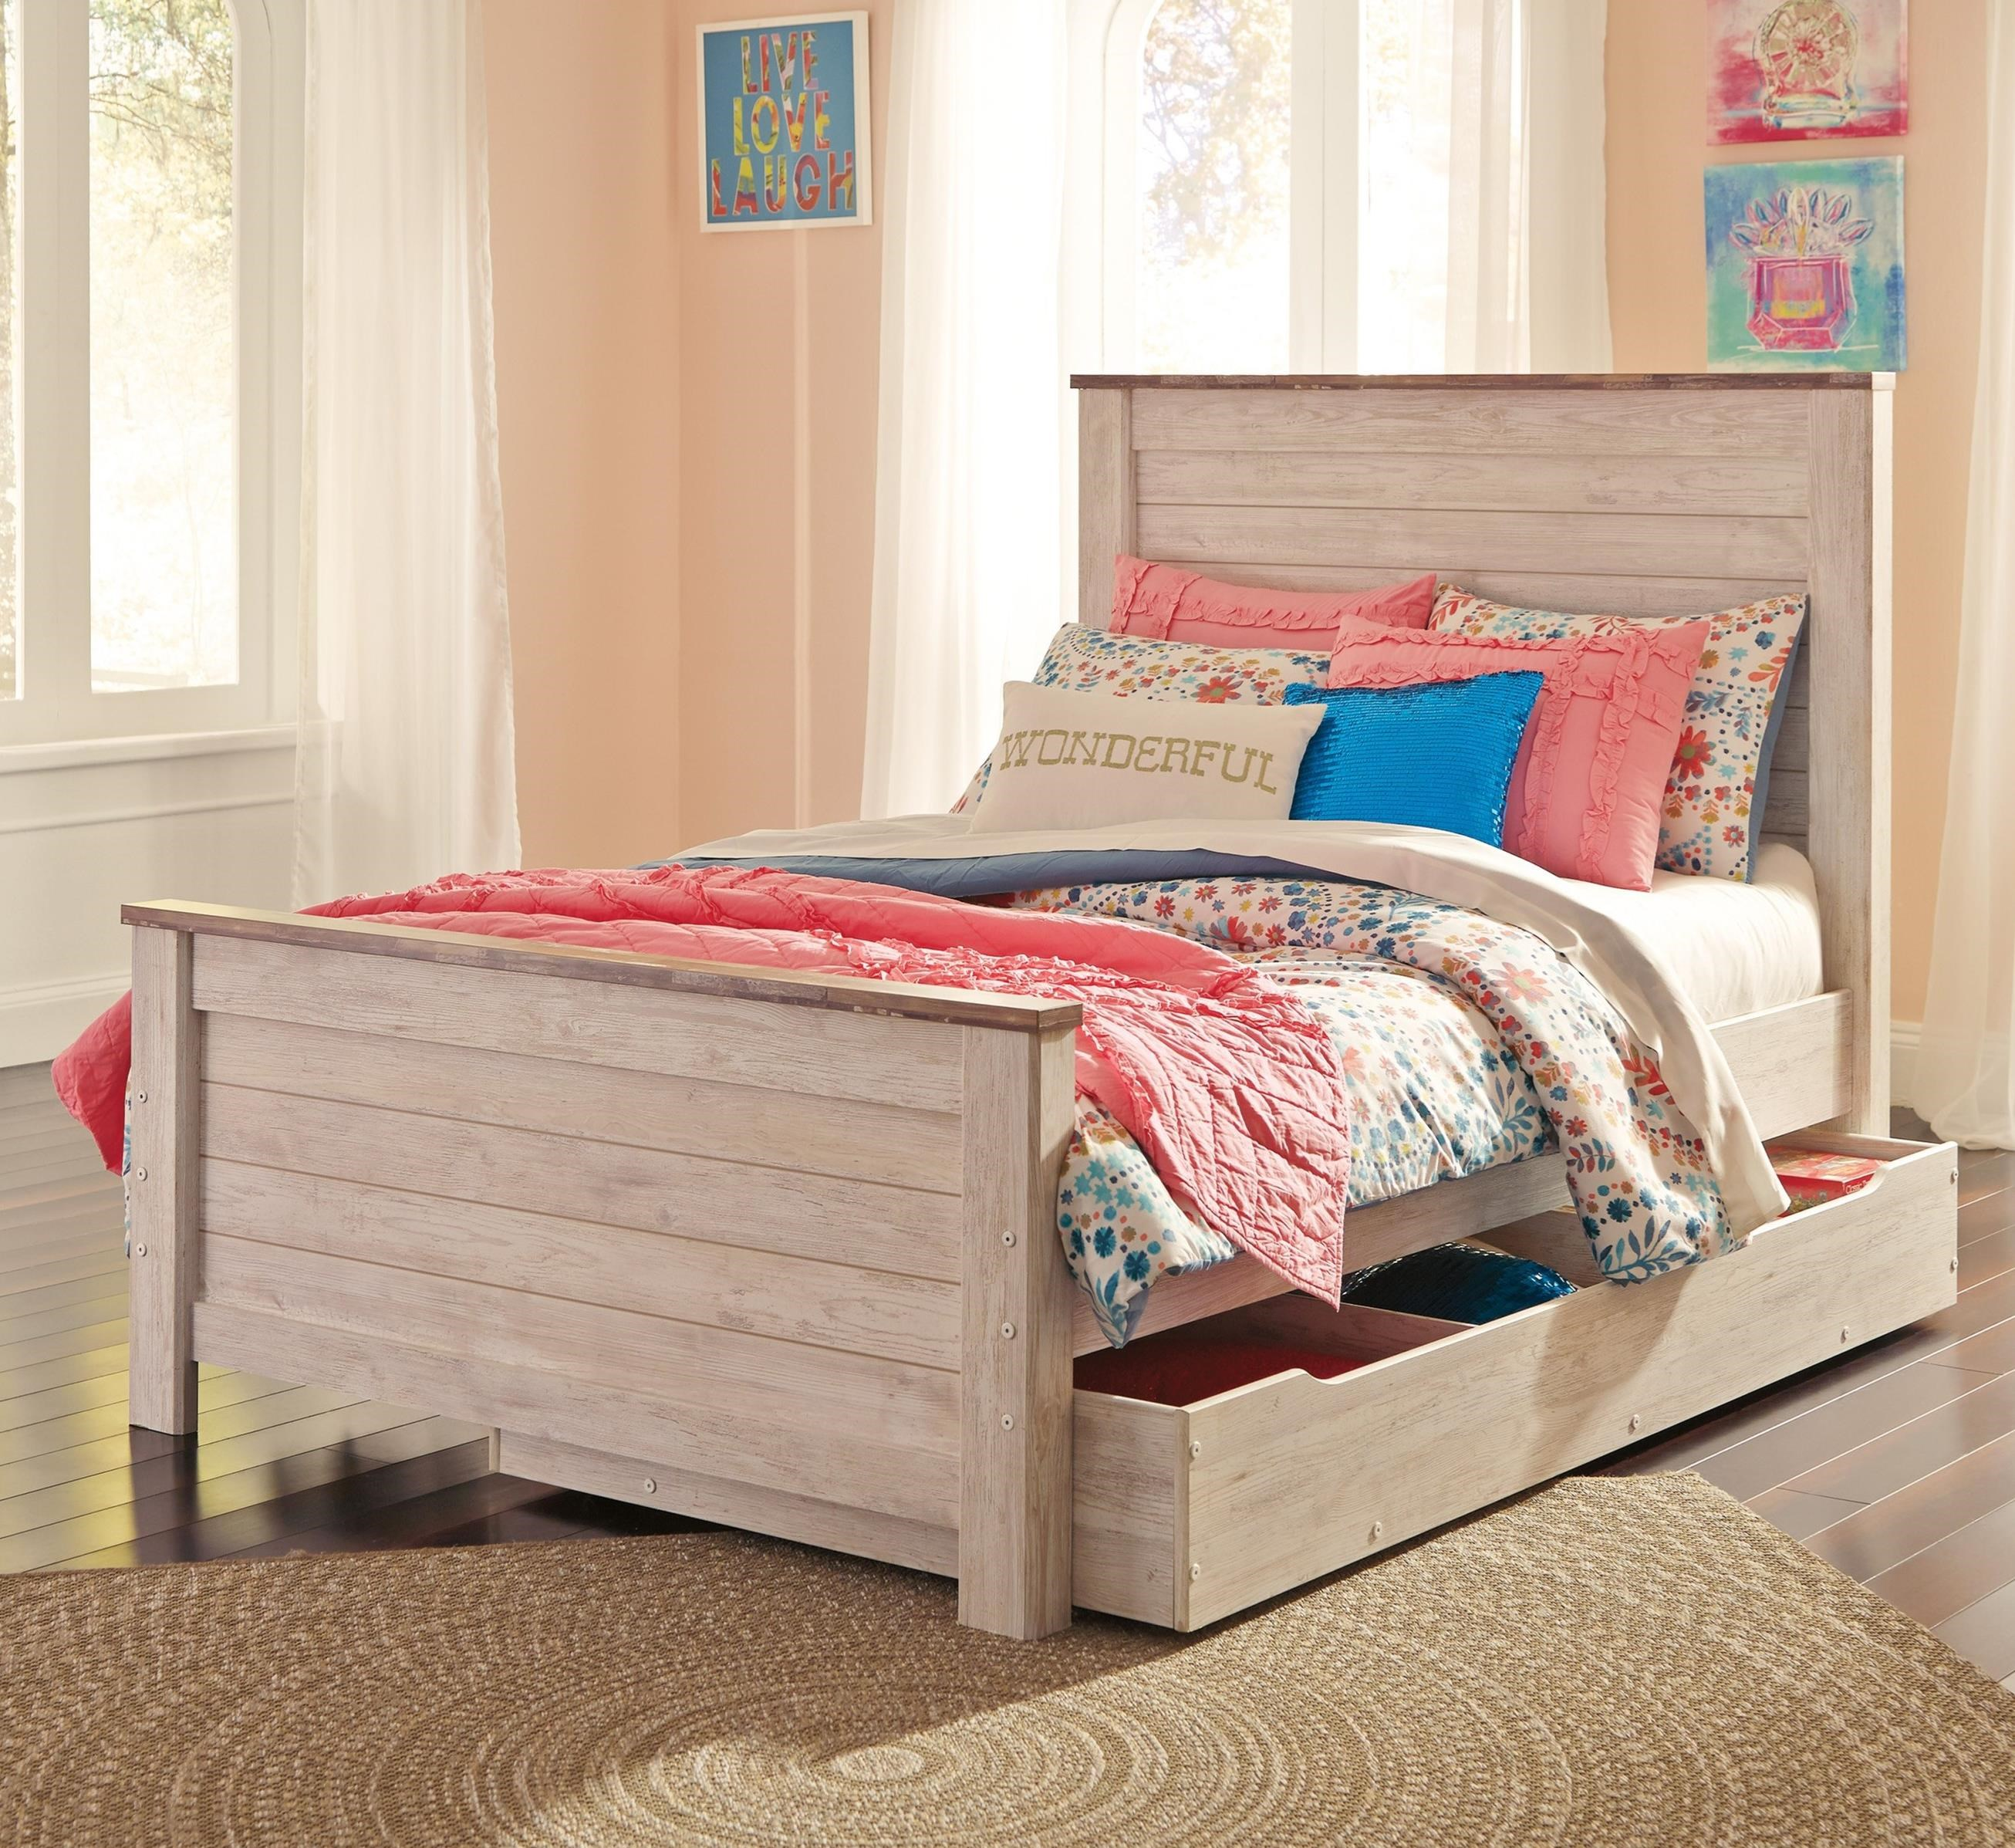 Signature Design By Ashley Willowton Two Tone Full Panel Bed With Under Bed Storage Household